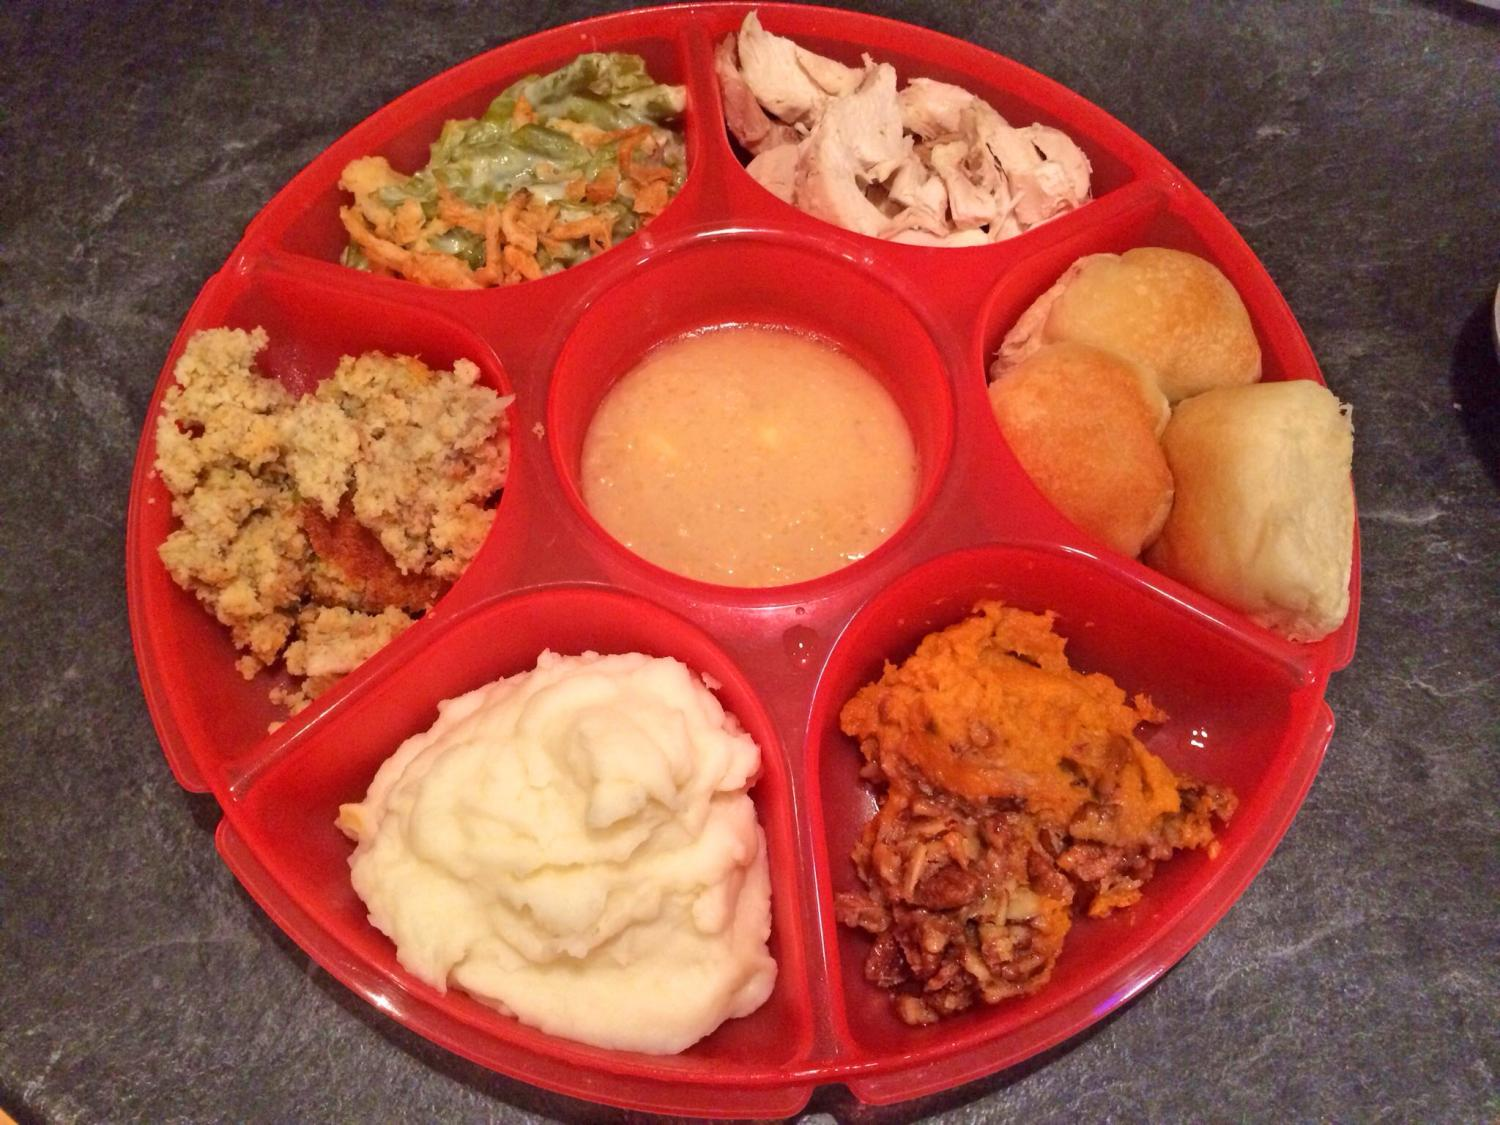 7 Section Divided Plate - The perfect plate for Thanksgiving Dinner